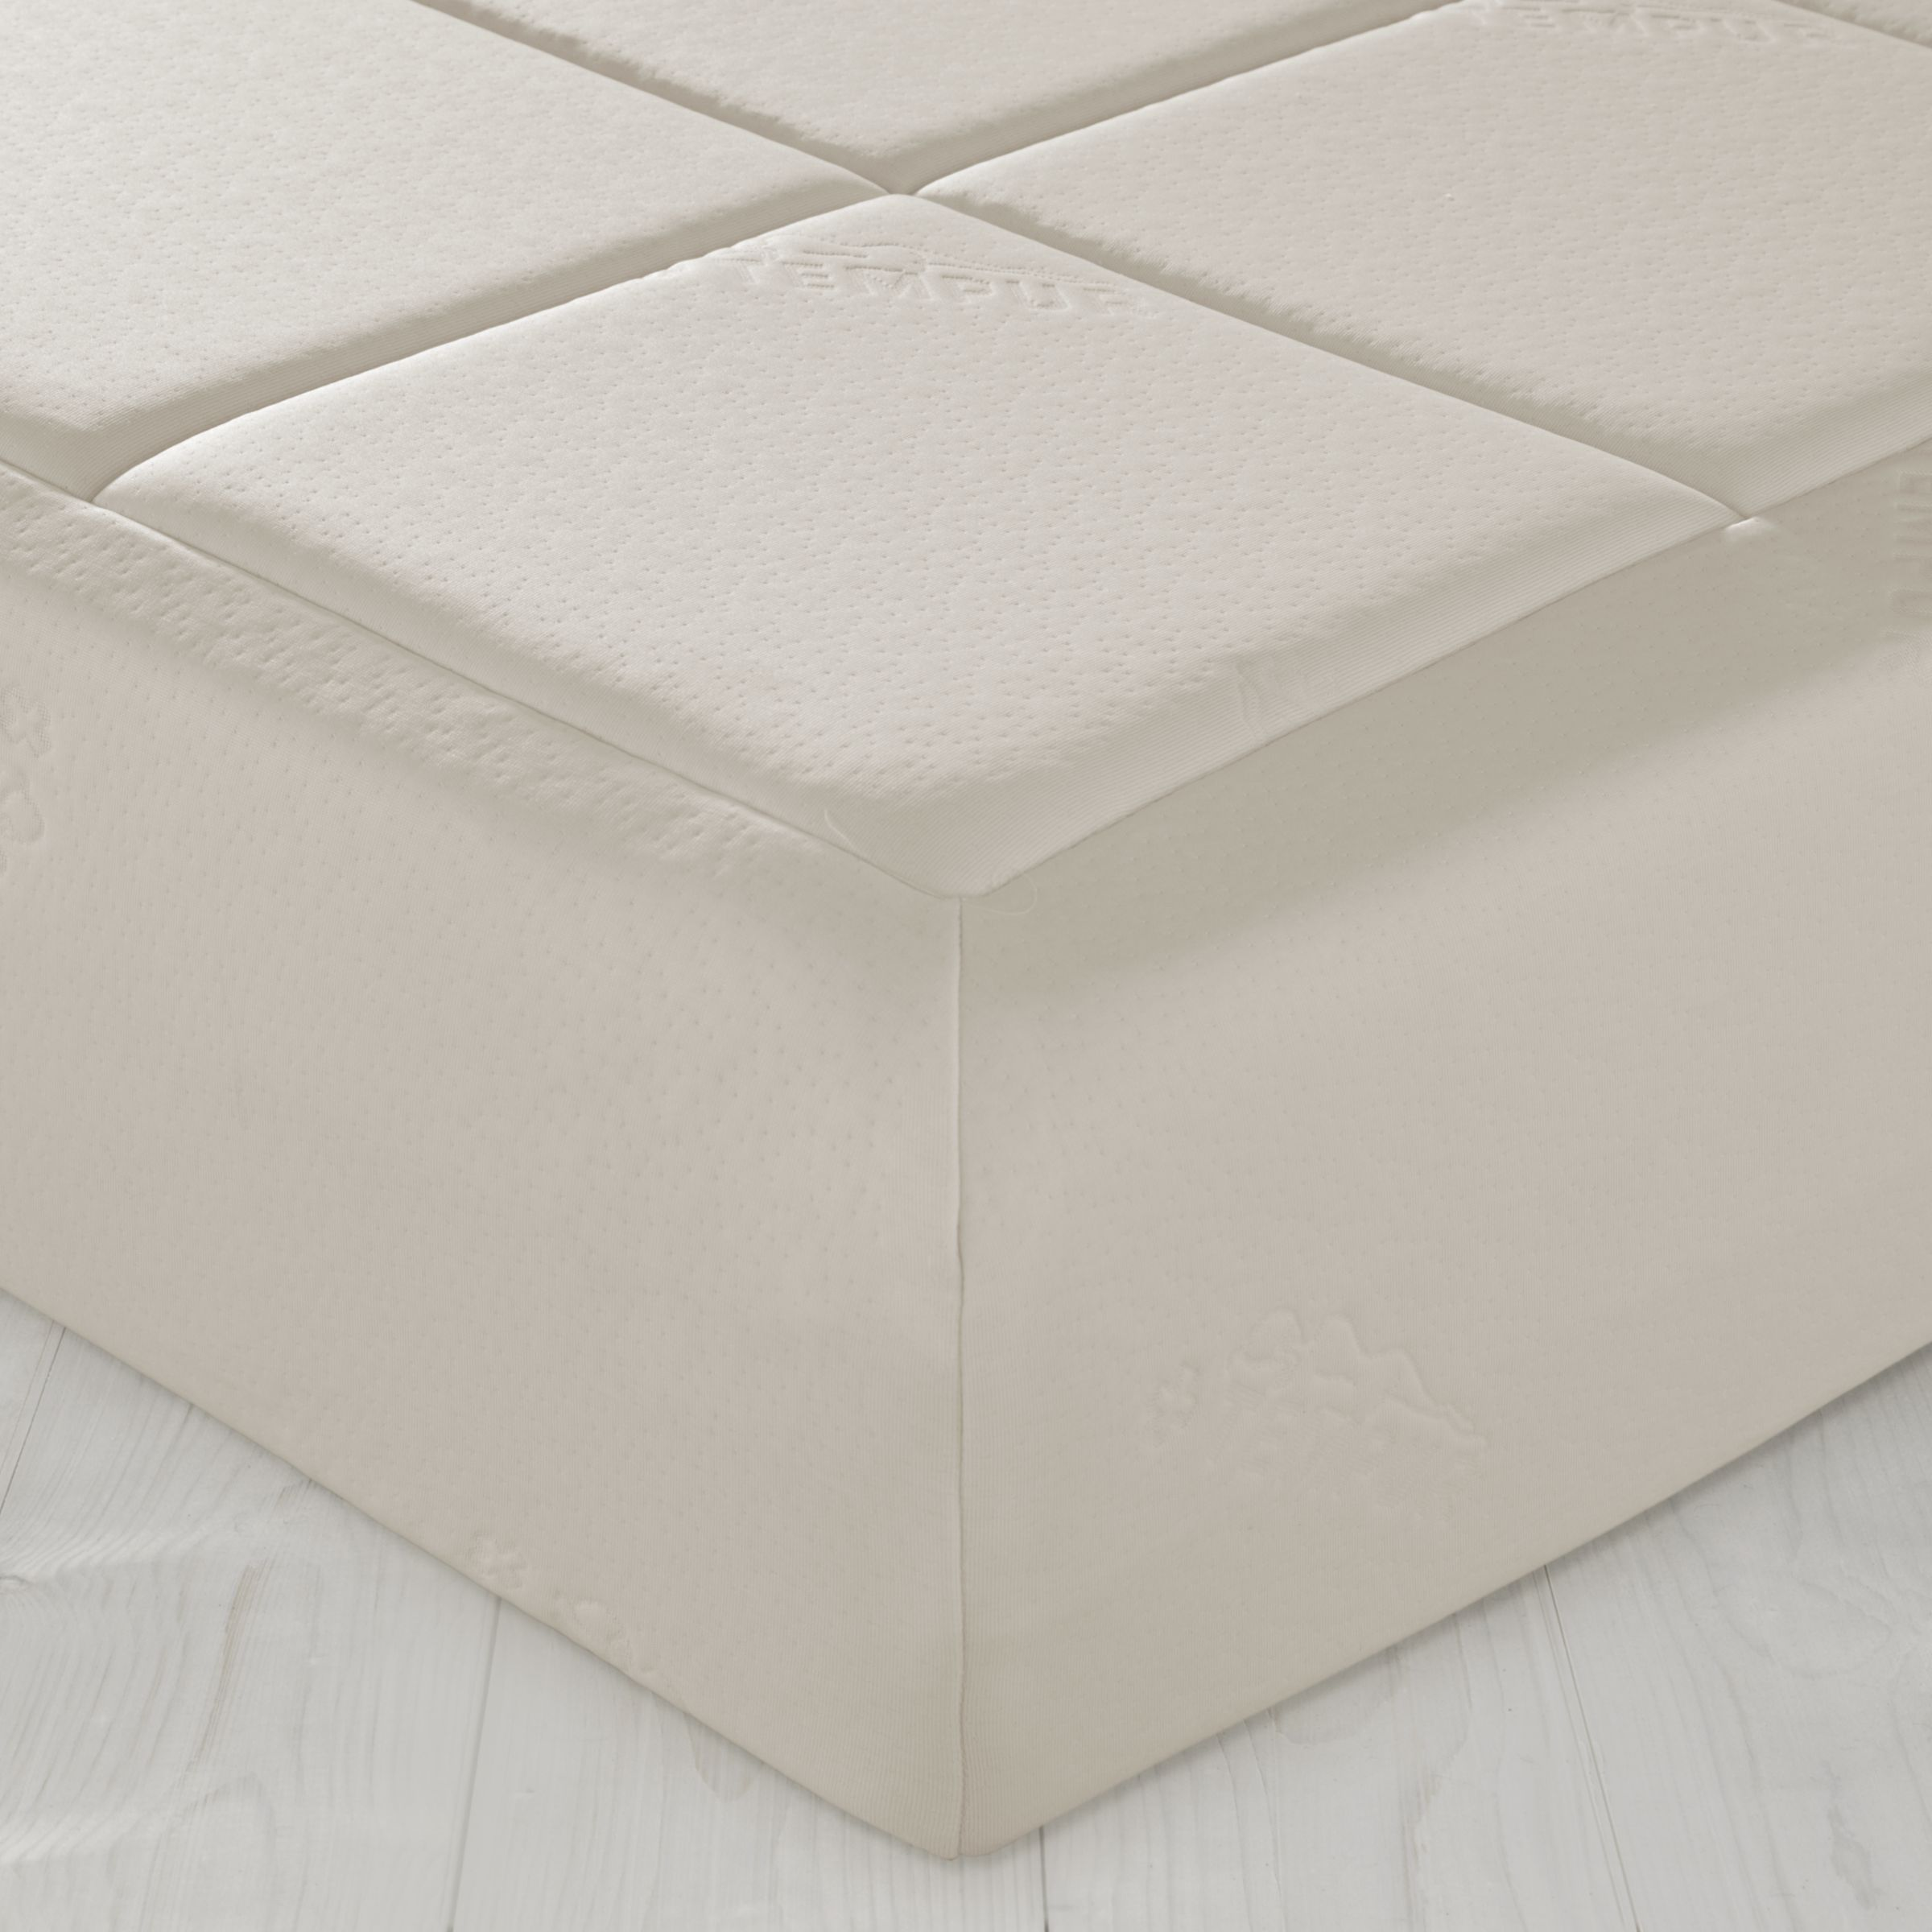 Tempur Original Deluxe 22 HD Mattress, Kingsize